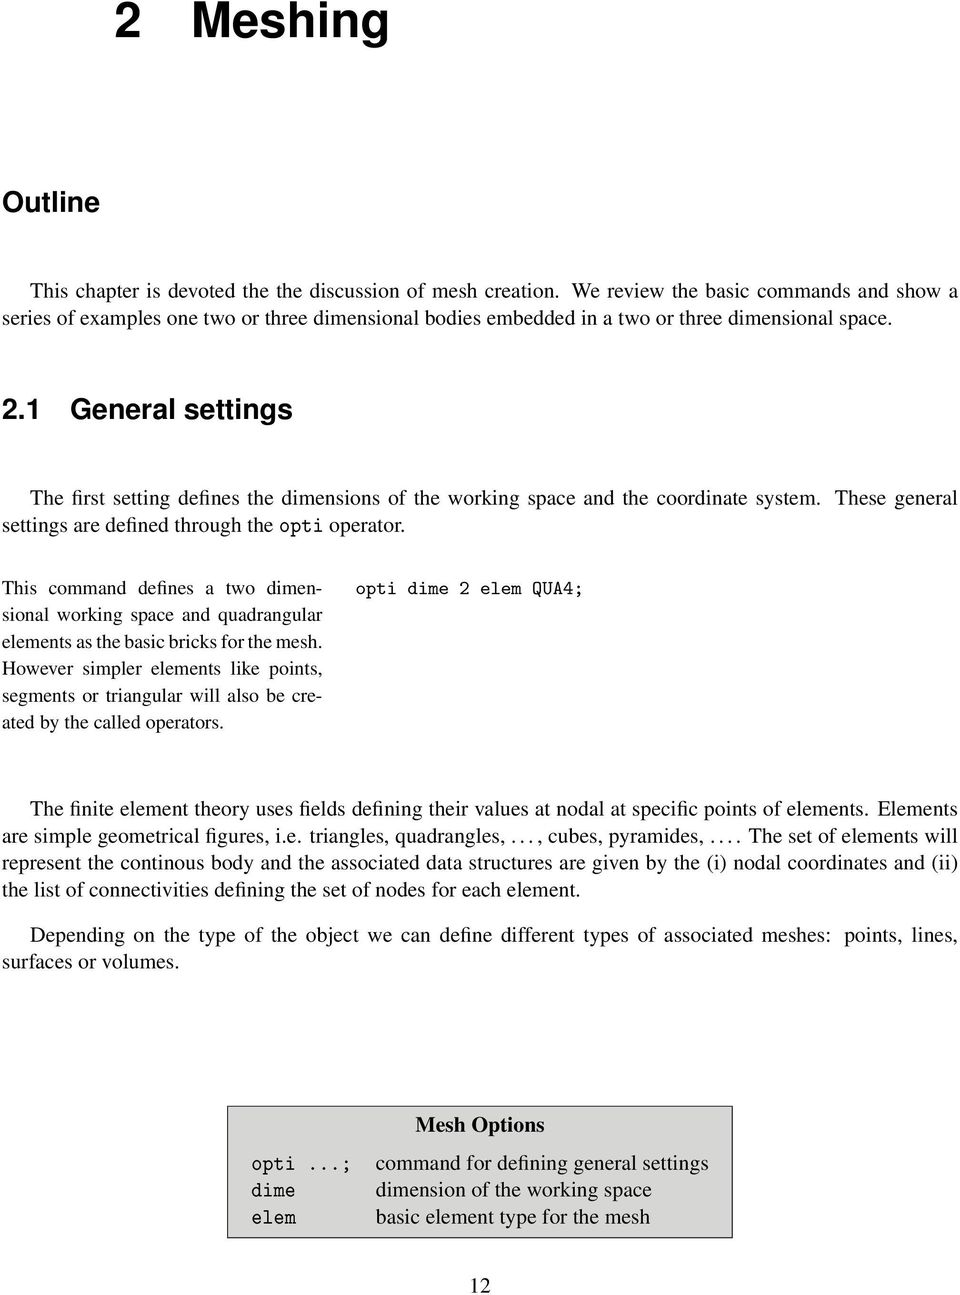 1 General settings The first setting defines the dimensions of the working space and the coordinate system. These general settings are defined through the opti operator.